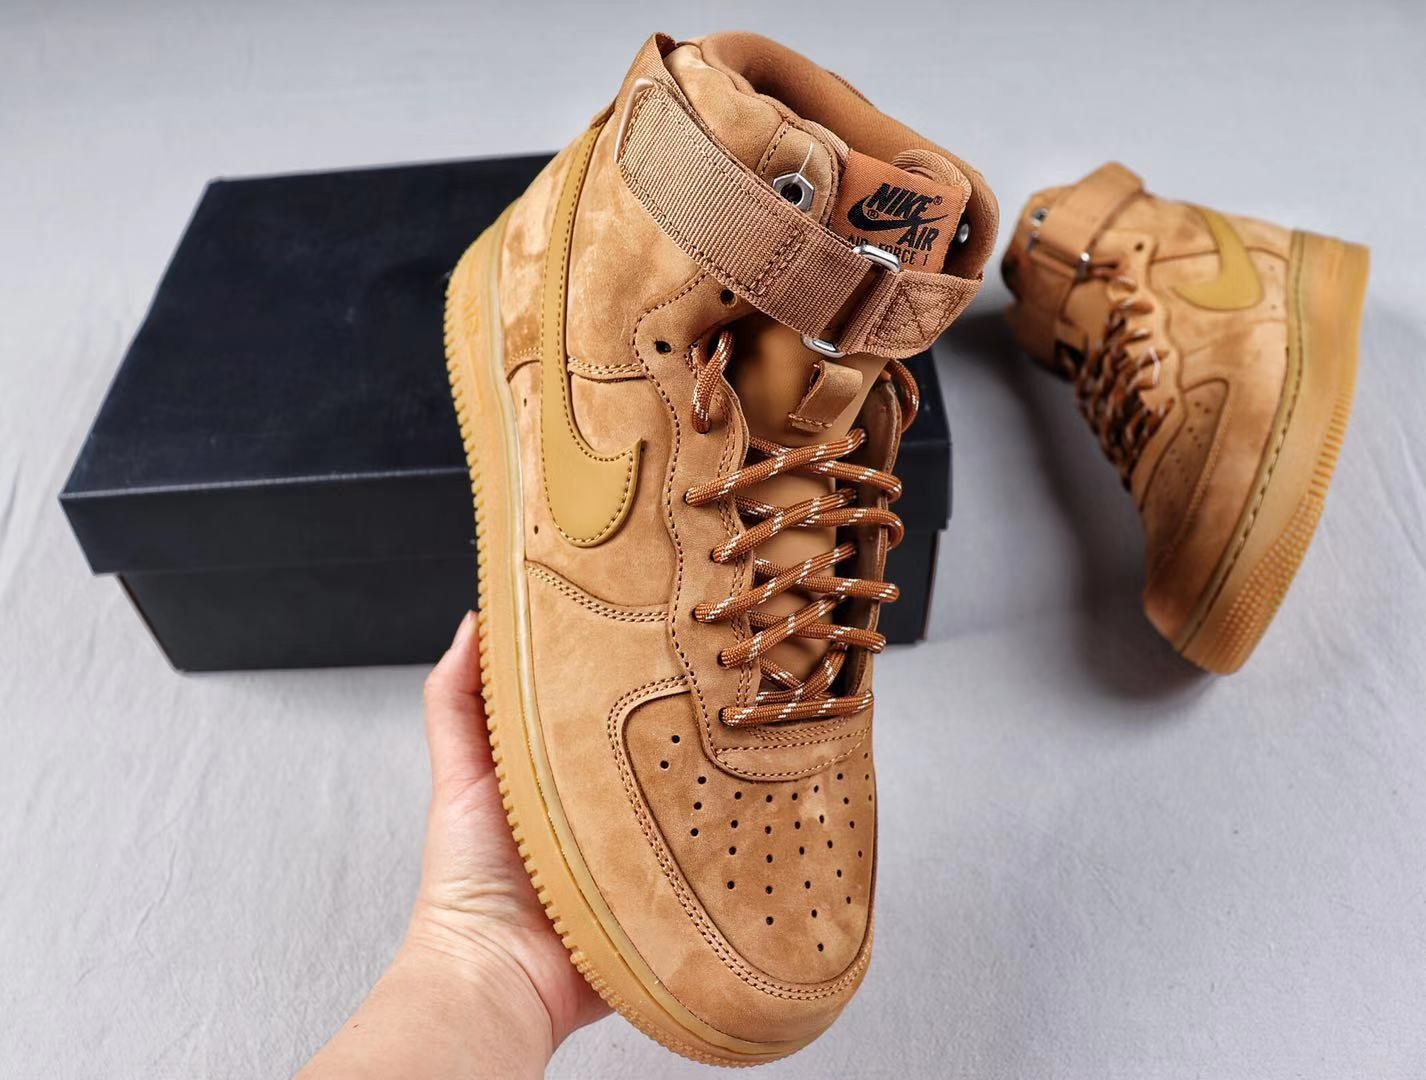 Nike Air Force 1 High Flax/Wheat-Outdoor Green-Gum Light Brown Free Shipping